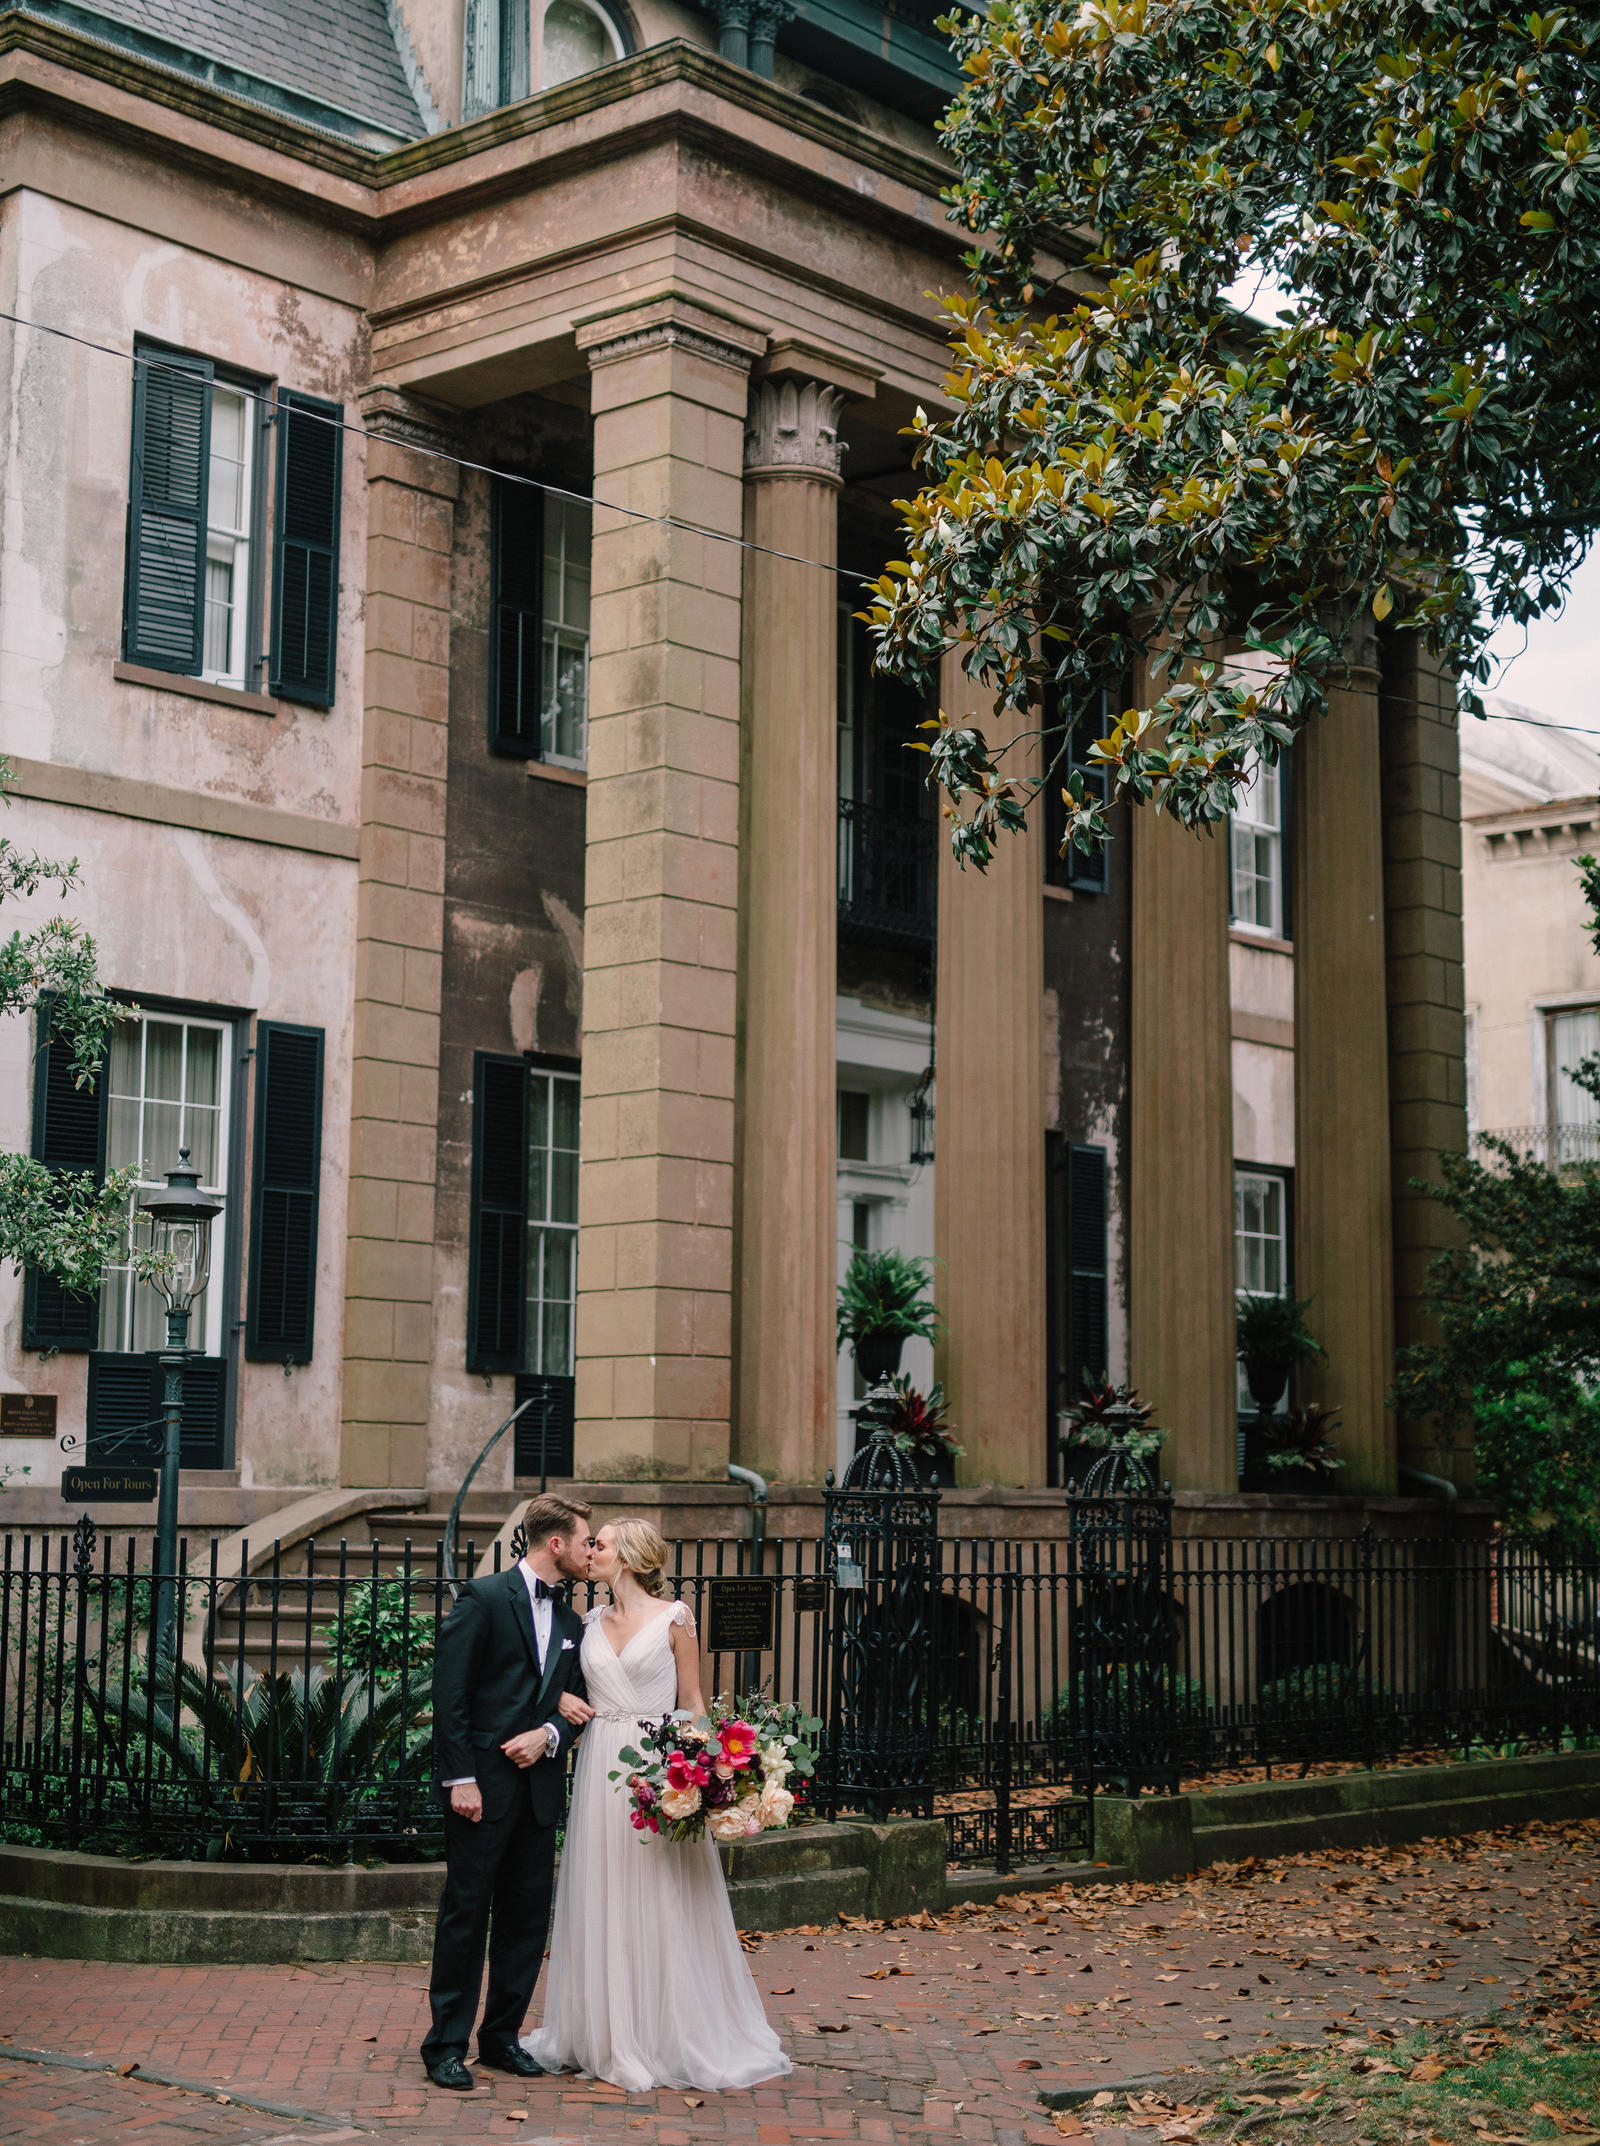 Editorial Photography | Atlanta, GA | A bride and groom stand, kissing, in front of a two story stone building that has large columns.